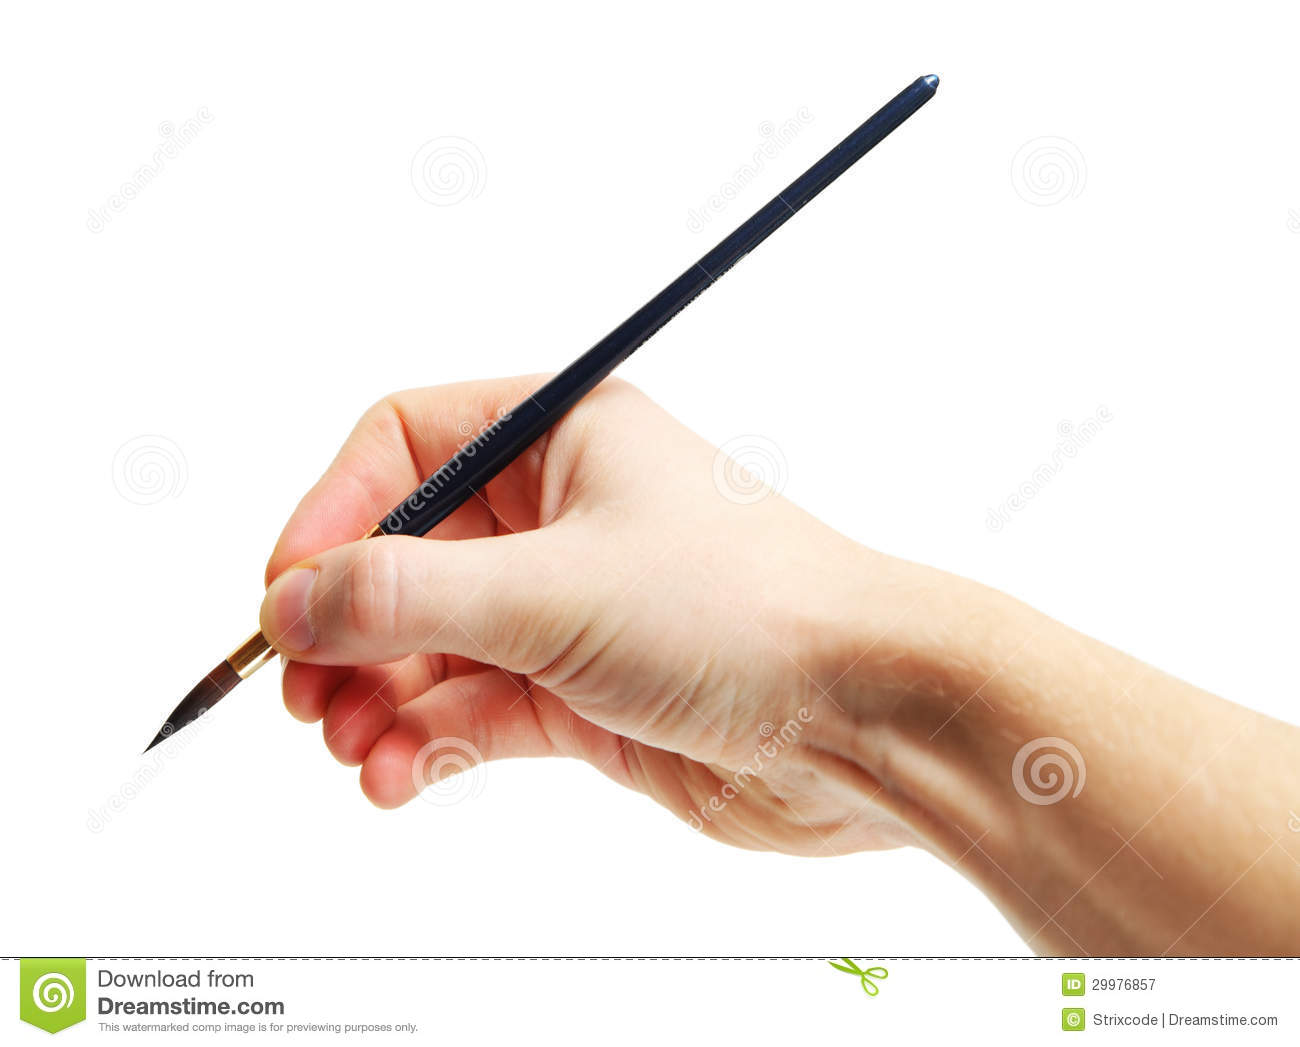 How To Hold A Paintbrush To Paint A Picture